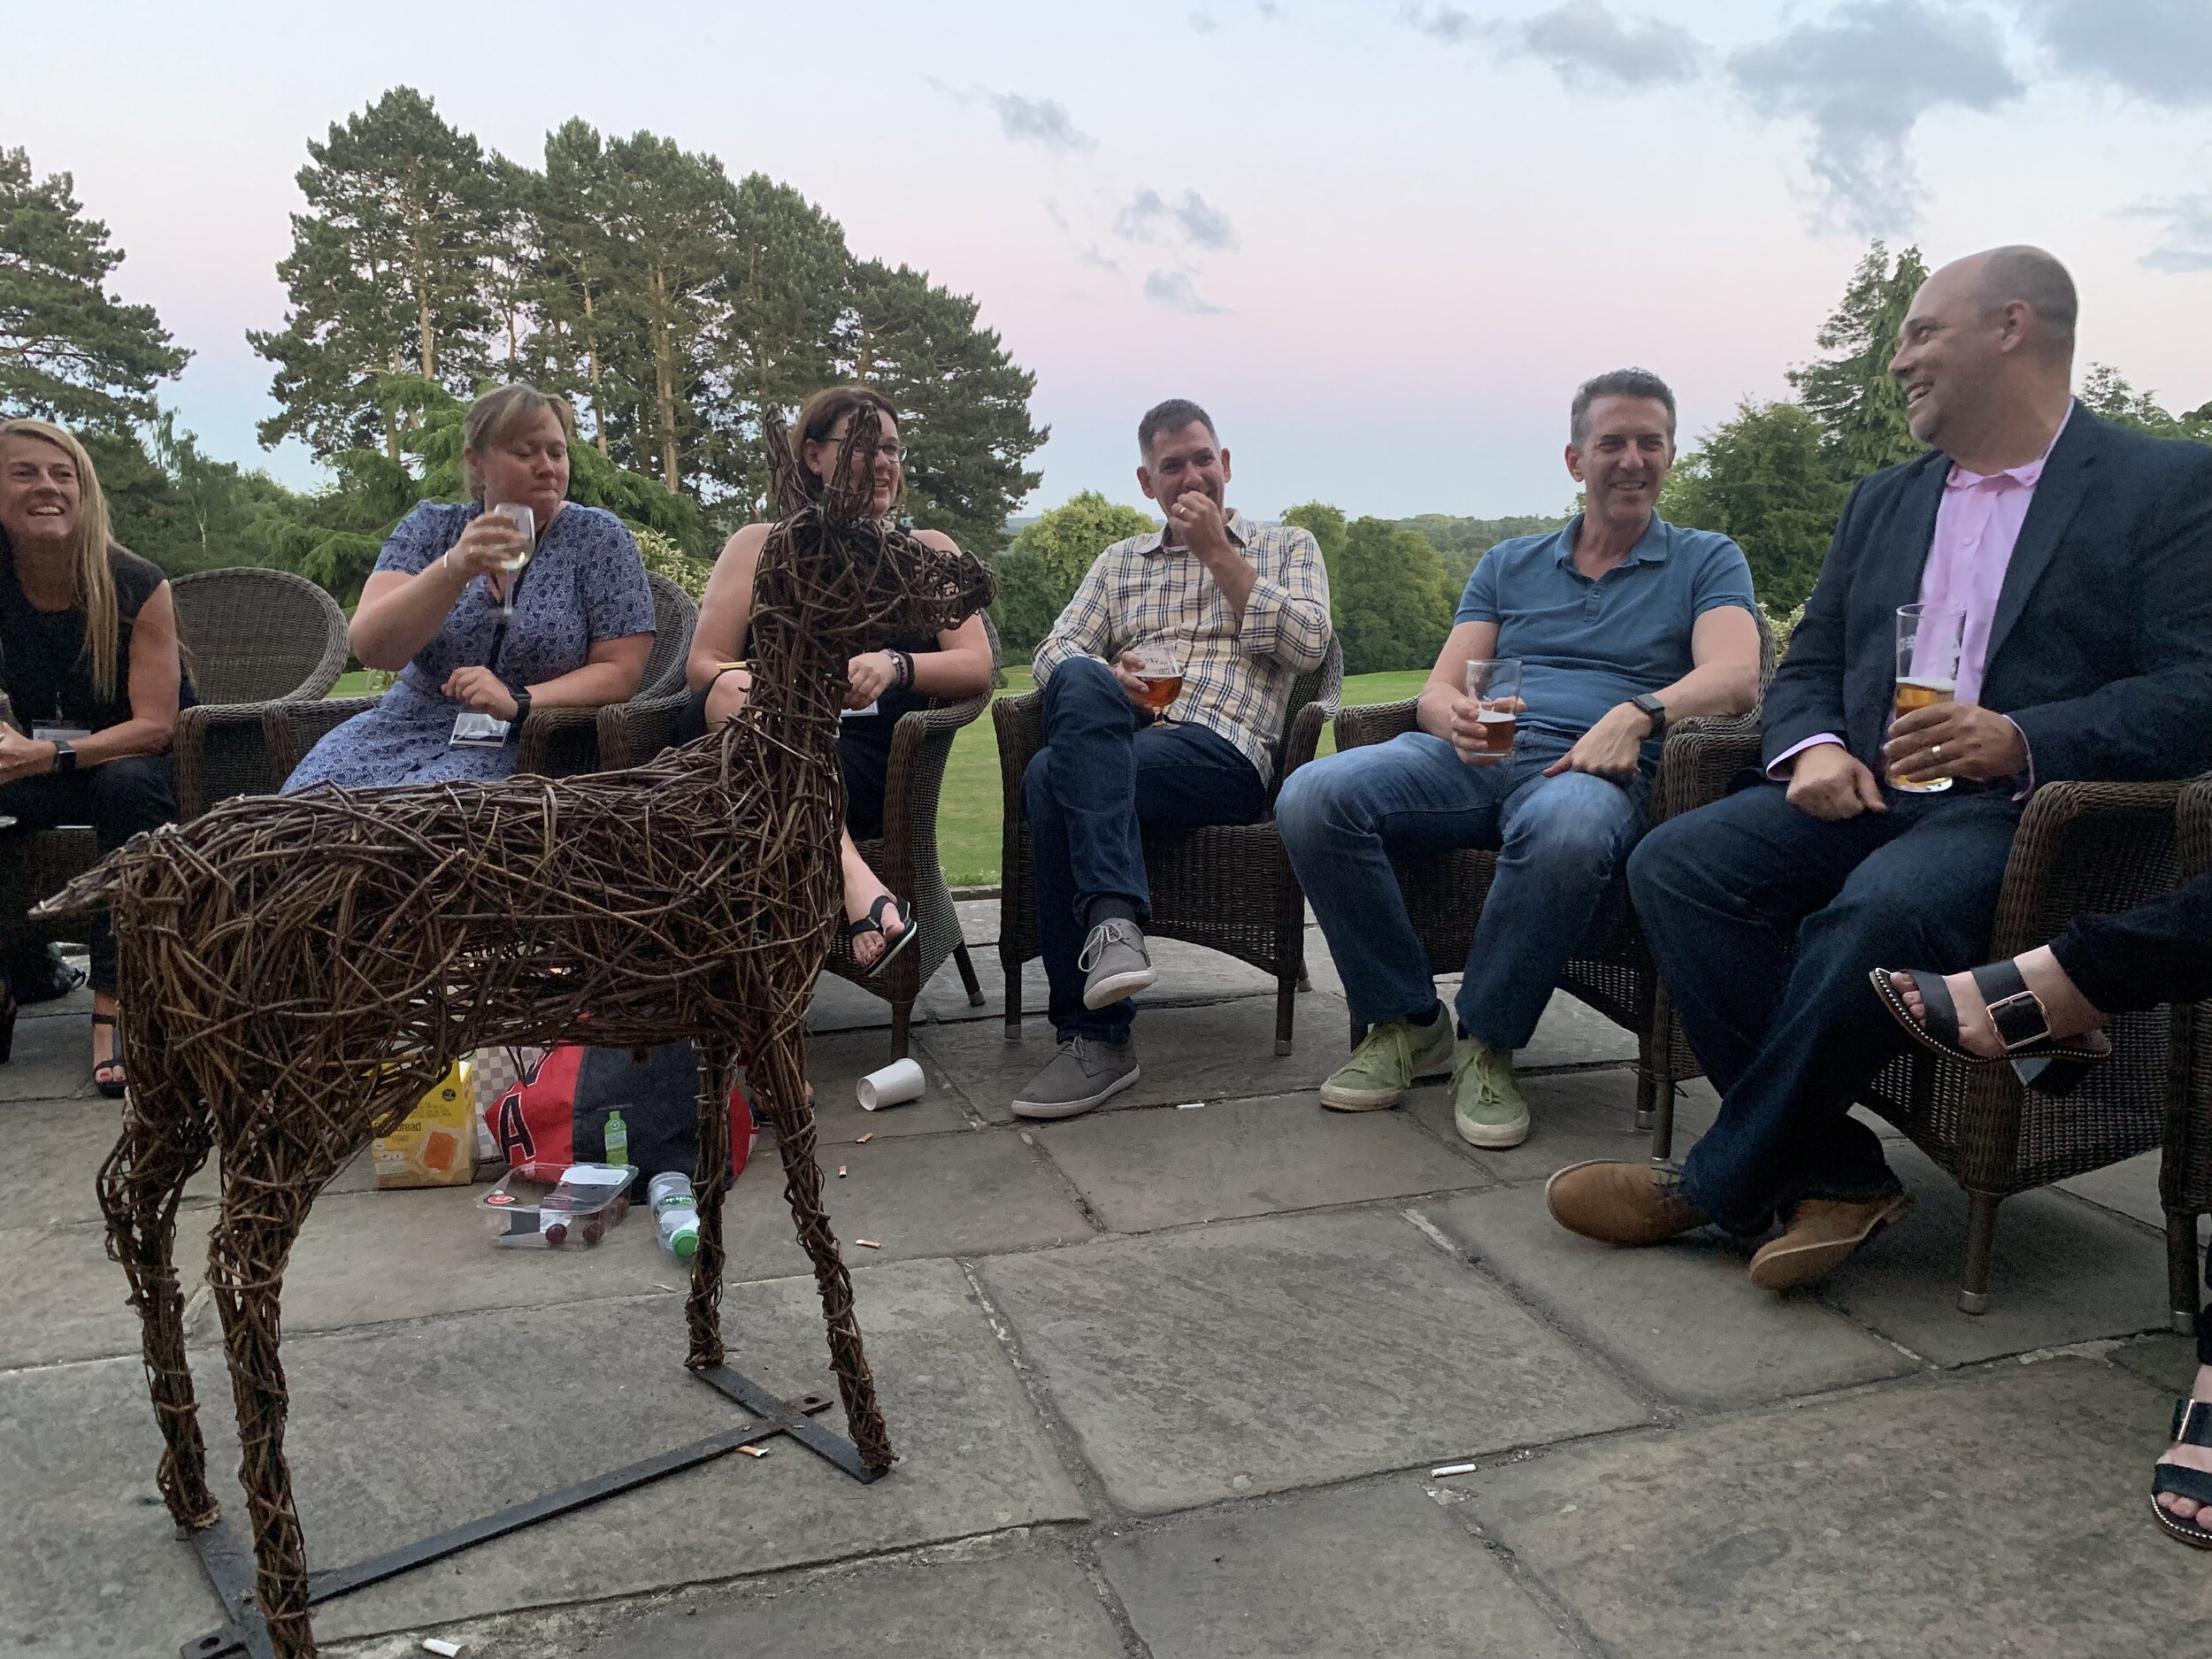 Selsdon Deer observes Ron & Jeff.jpg